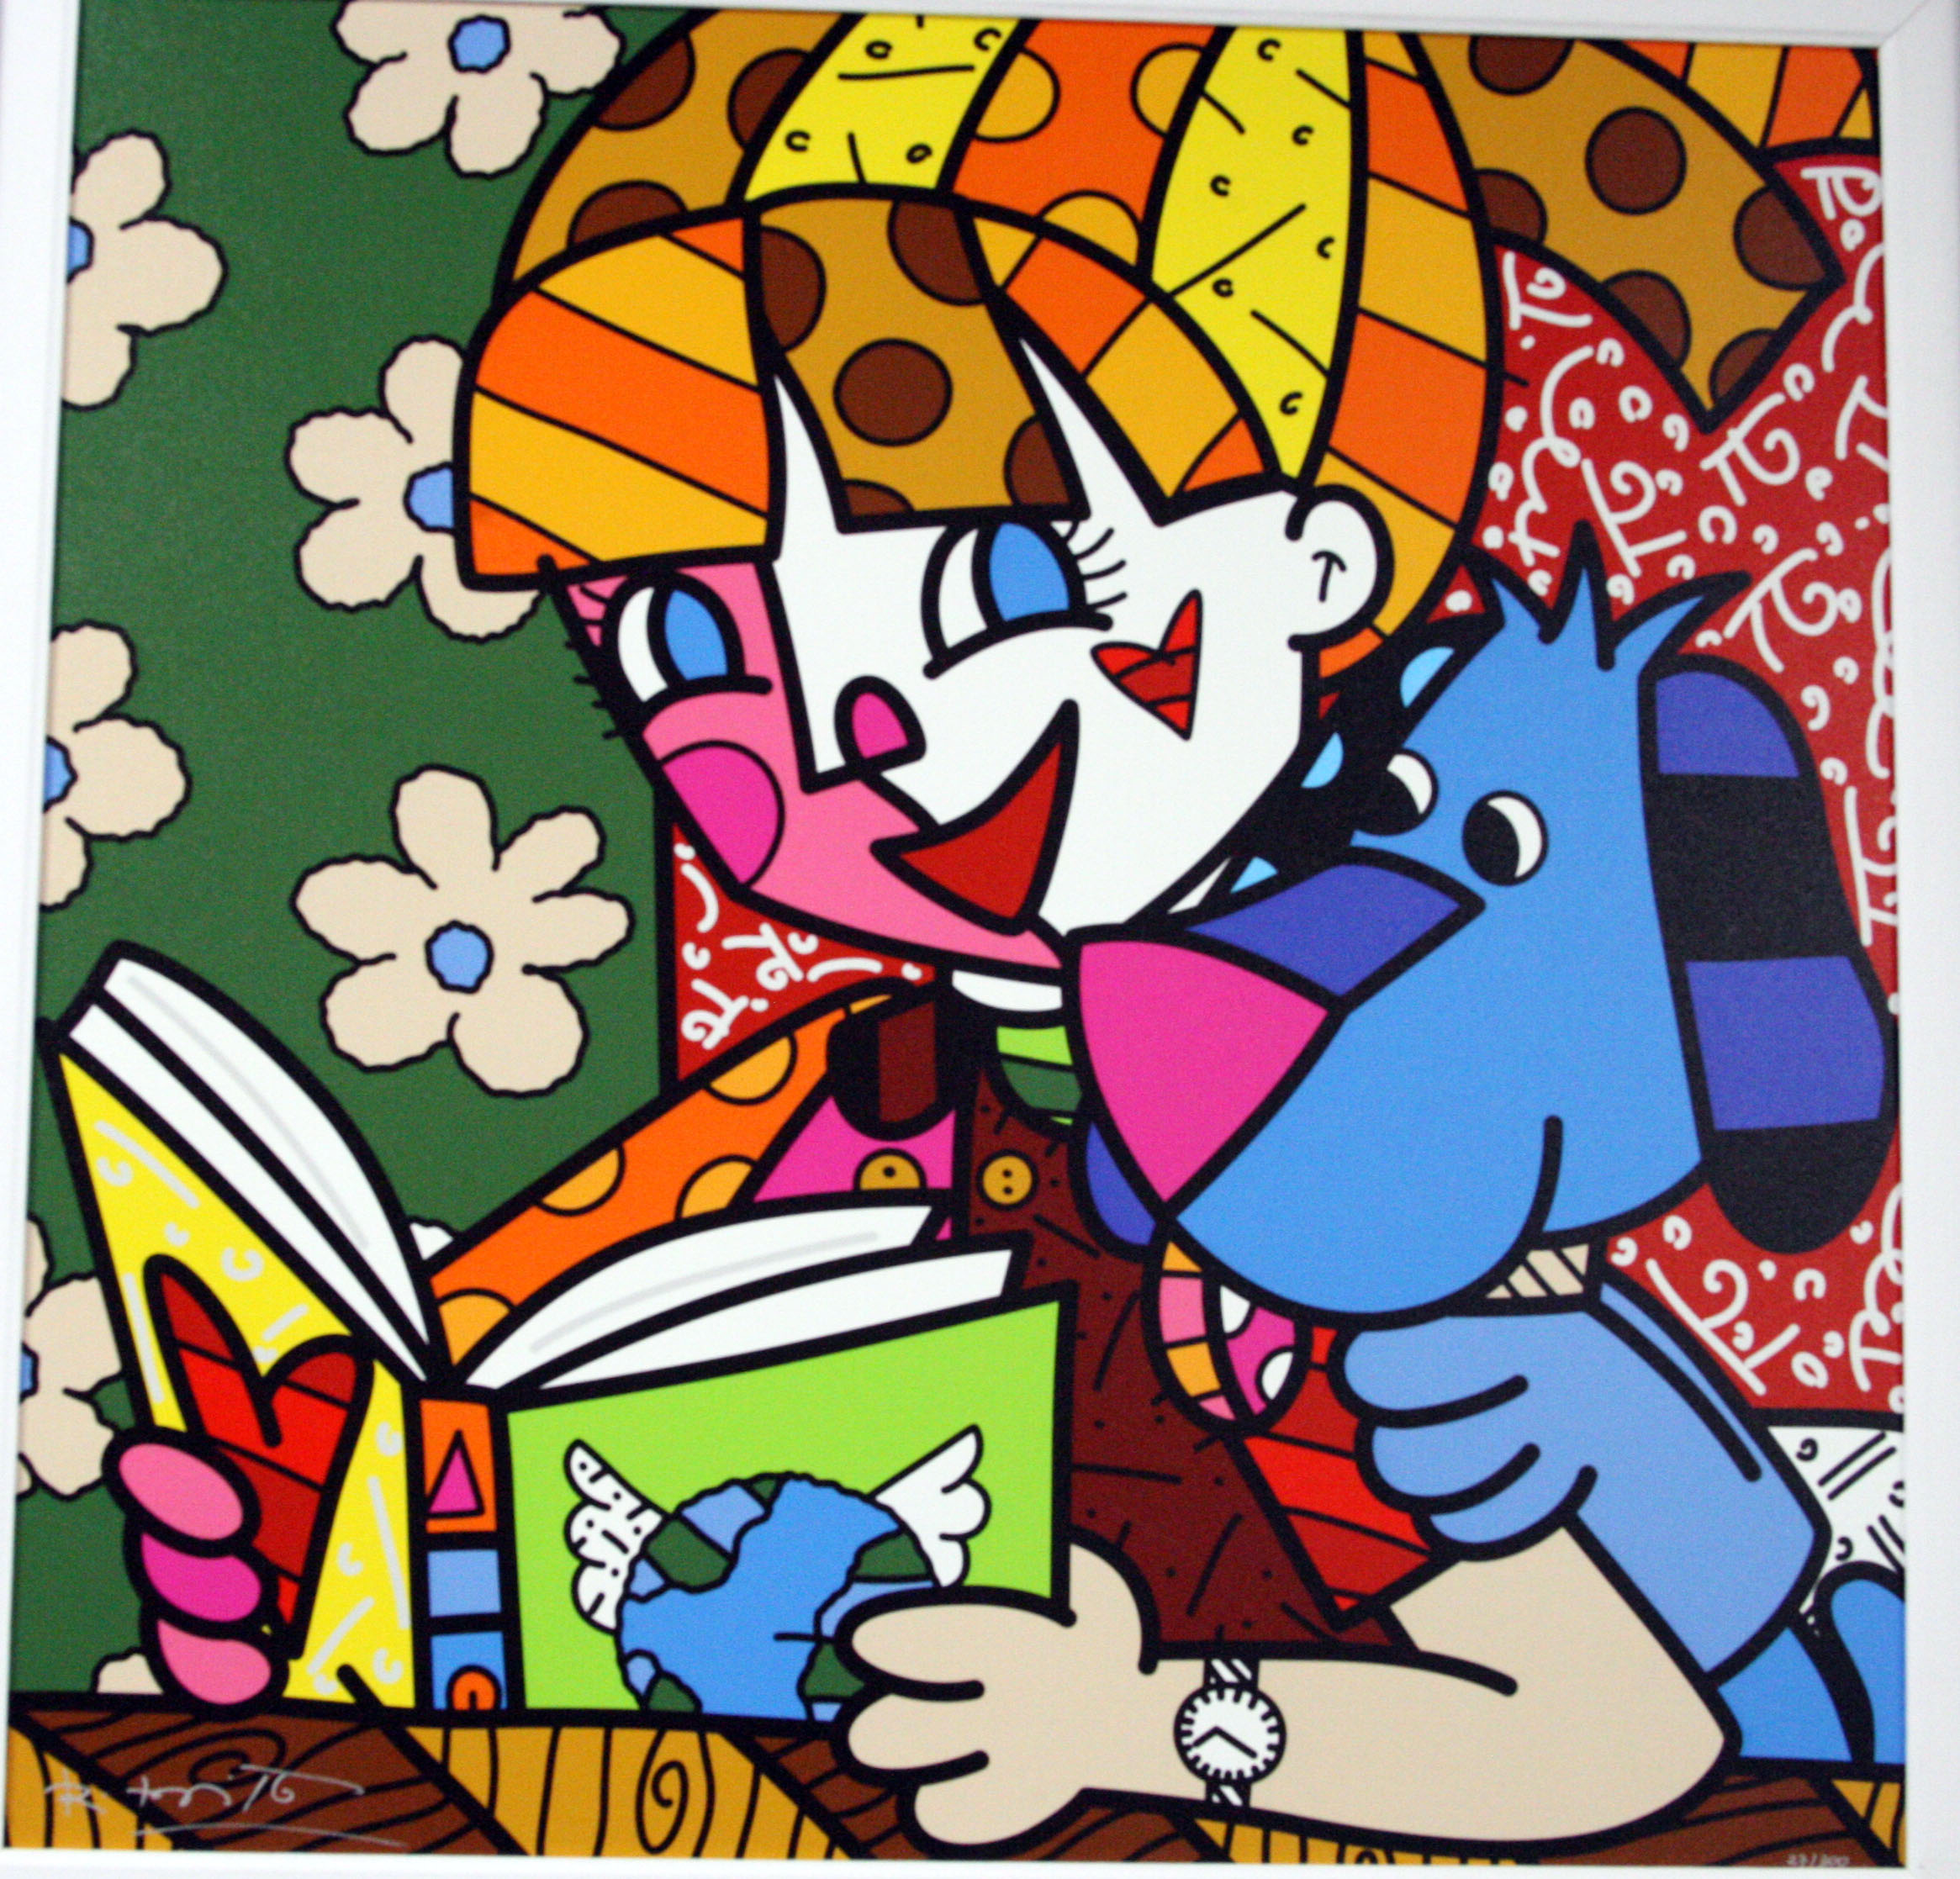 Romero Britto Wallpaper With 1920x1080 Resolution Pictures to pin on ...